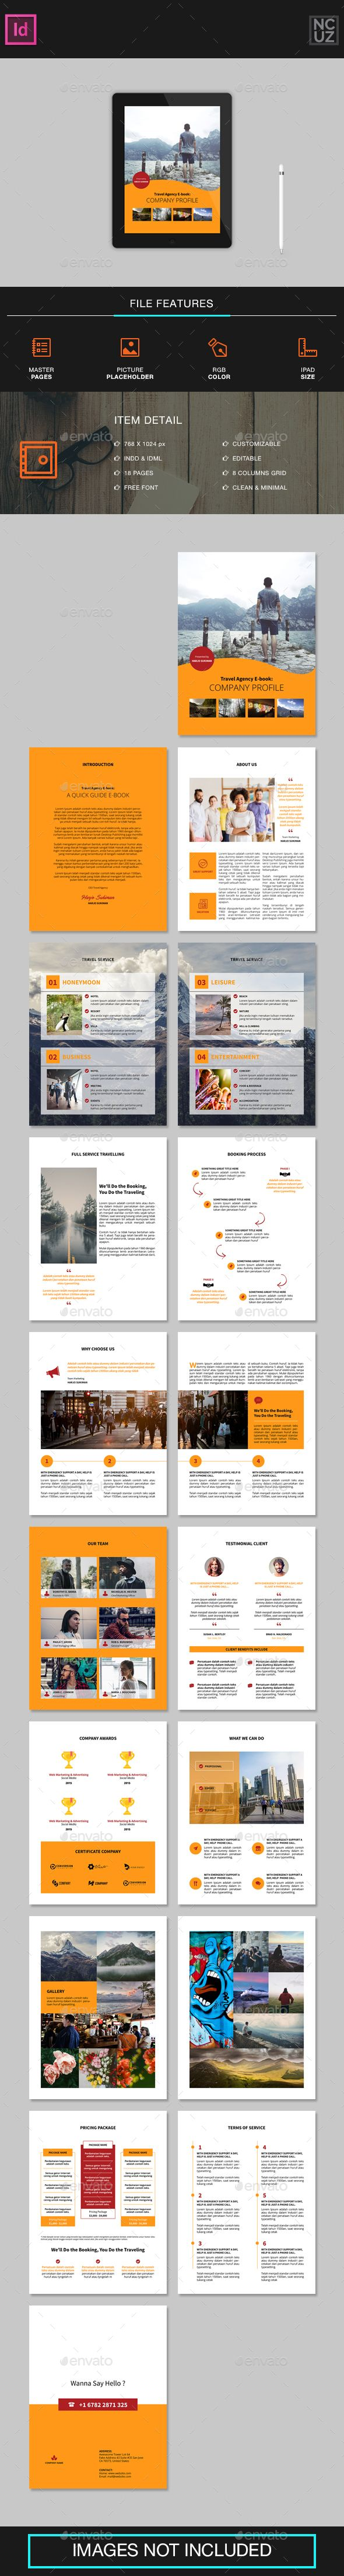 Travel Agency E-book Template   Template, Adobe indesign and Fonts